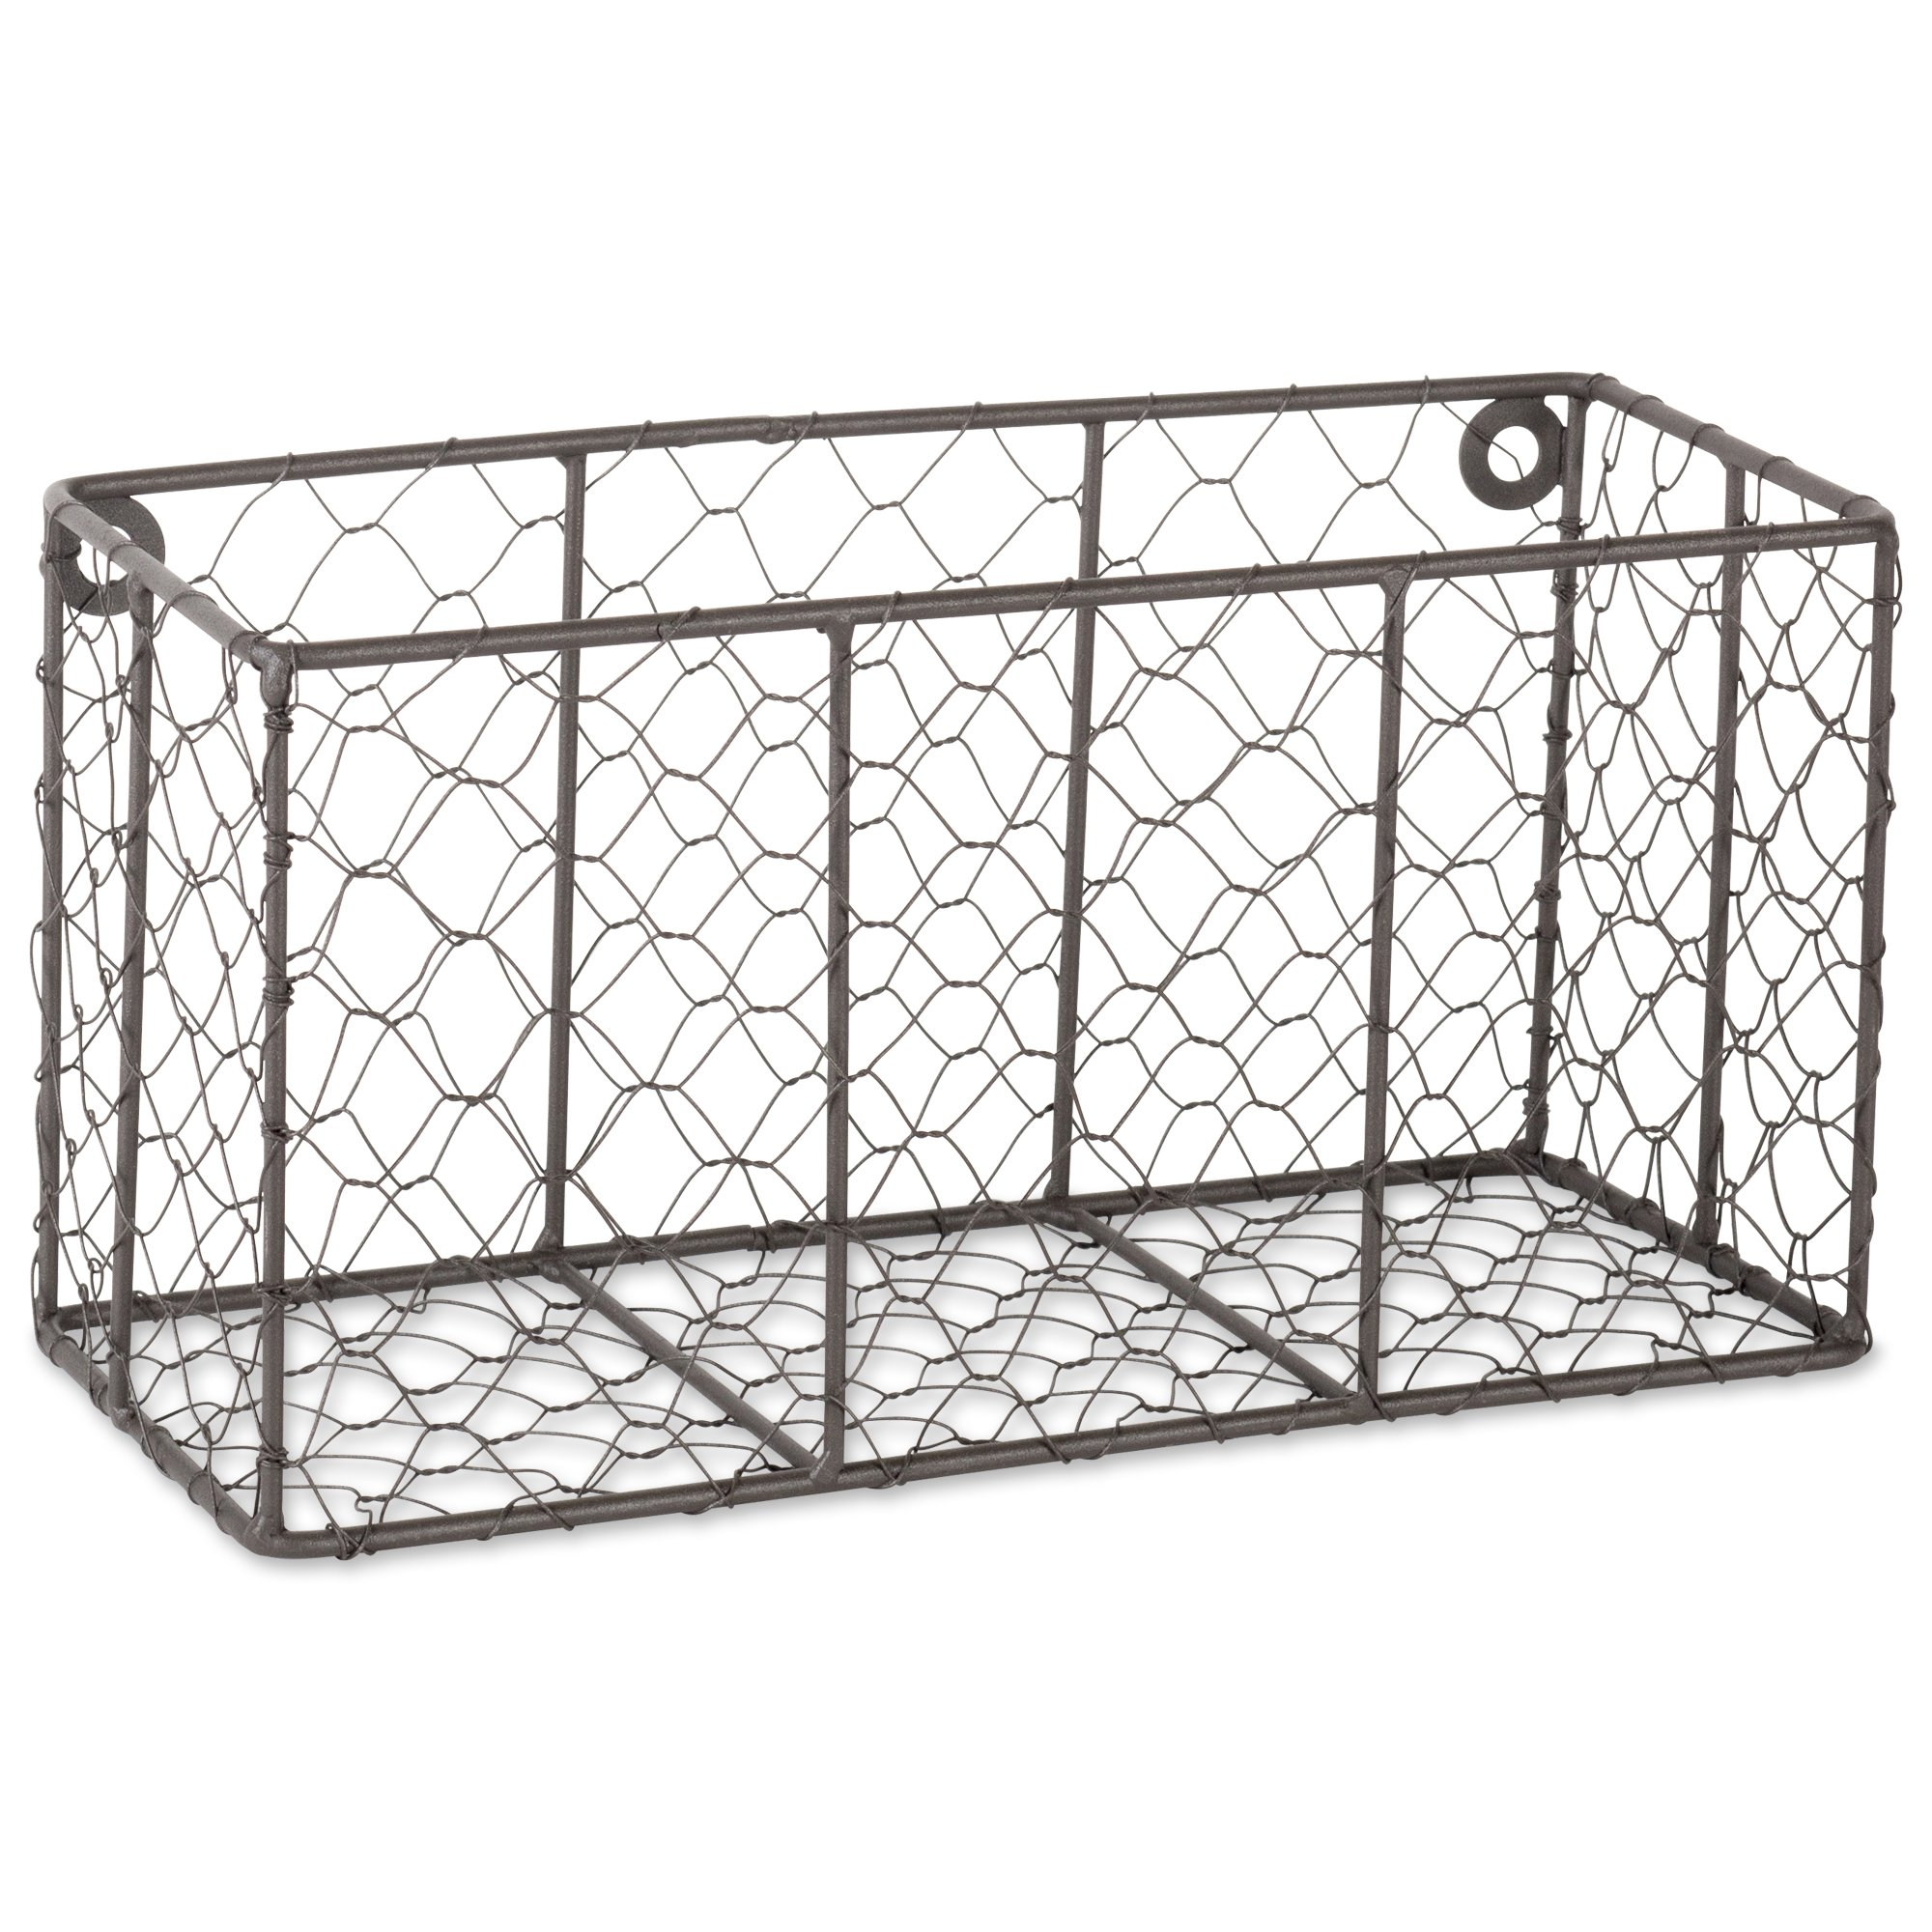 DII Z01929 Rustic Farmhouse Vintage Chicken Wire Wall Basket, Small (Set of 2), Bronze by DII (Image #3)